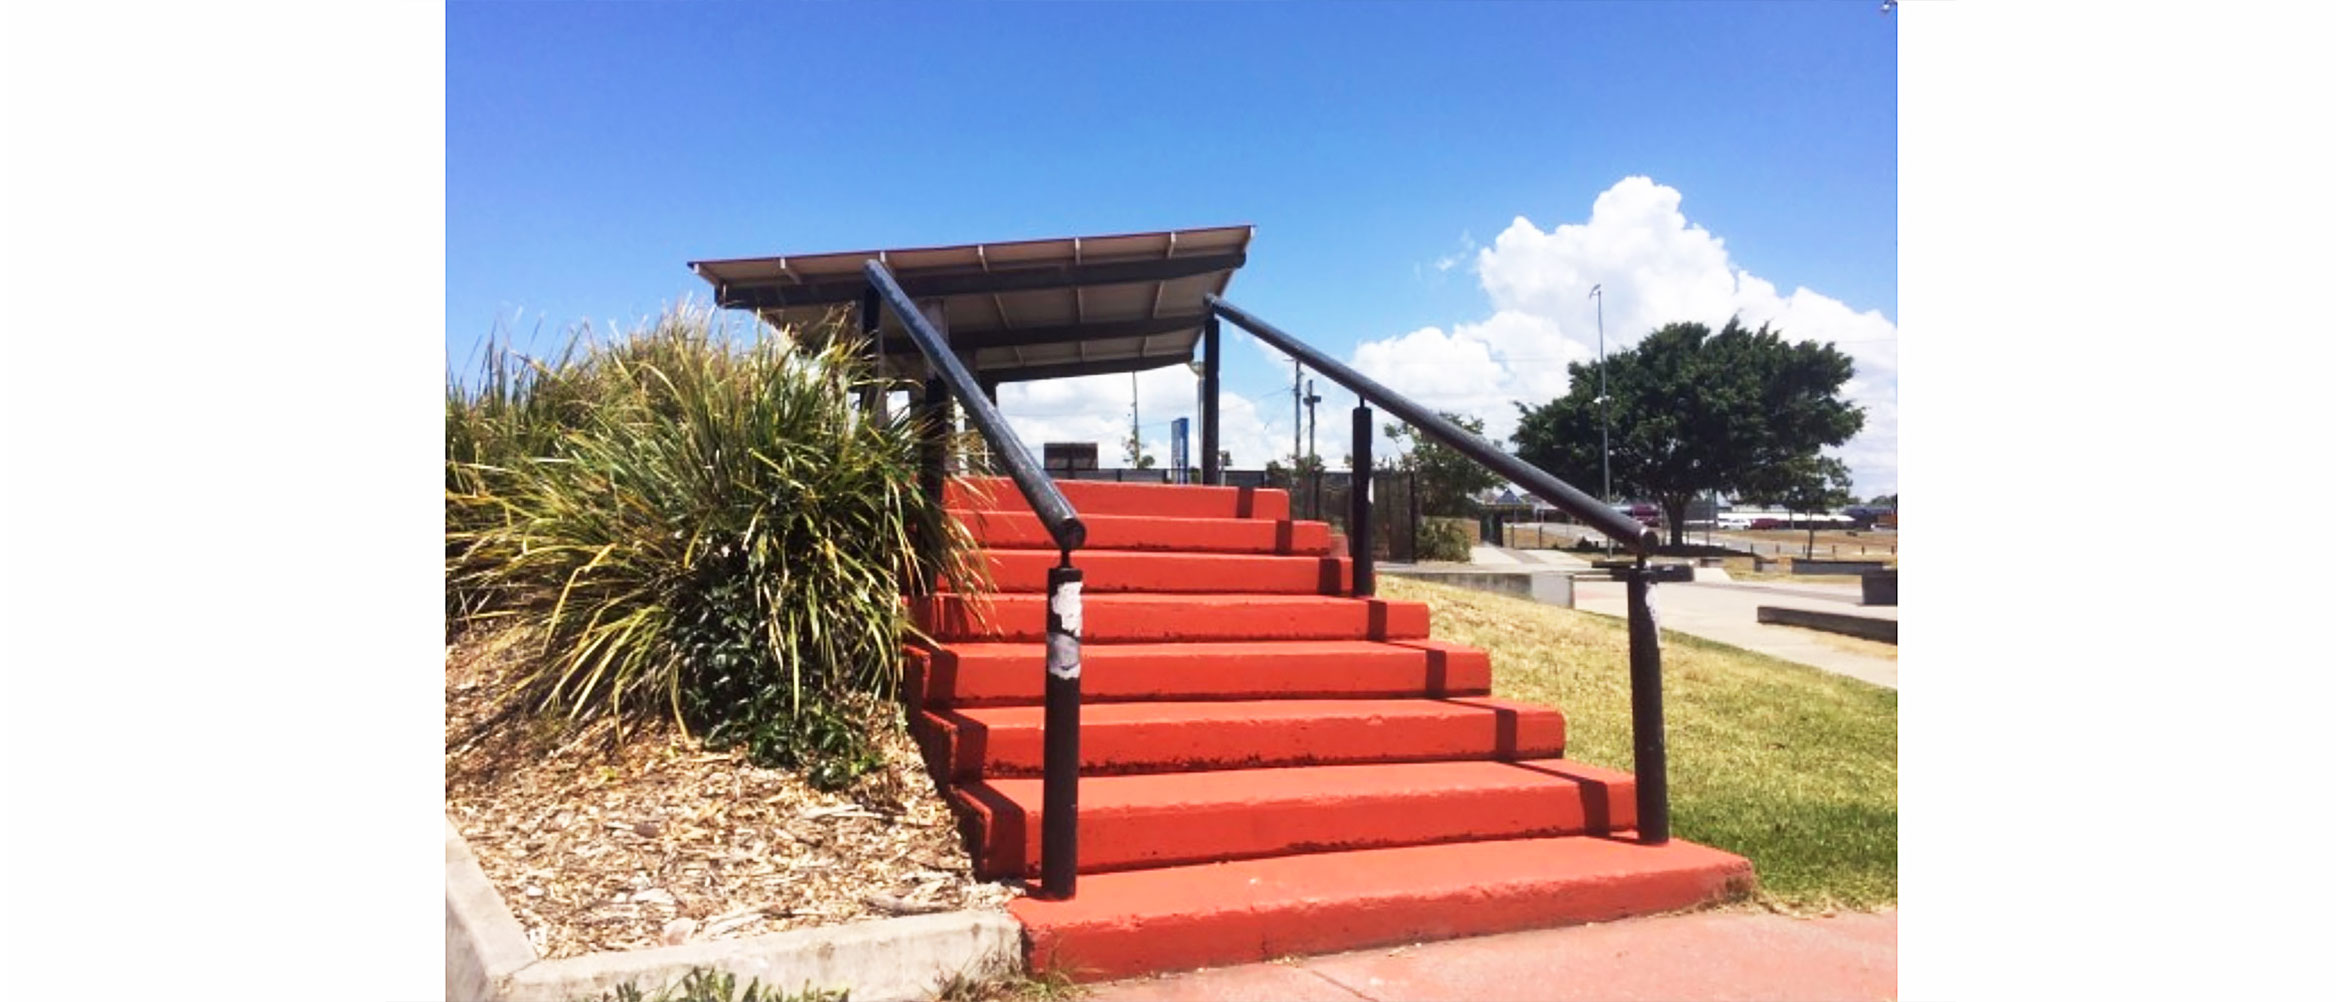 8 stair with handrails, Capalaba skate park, Concrete Skateparks build